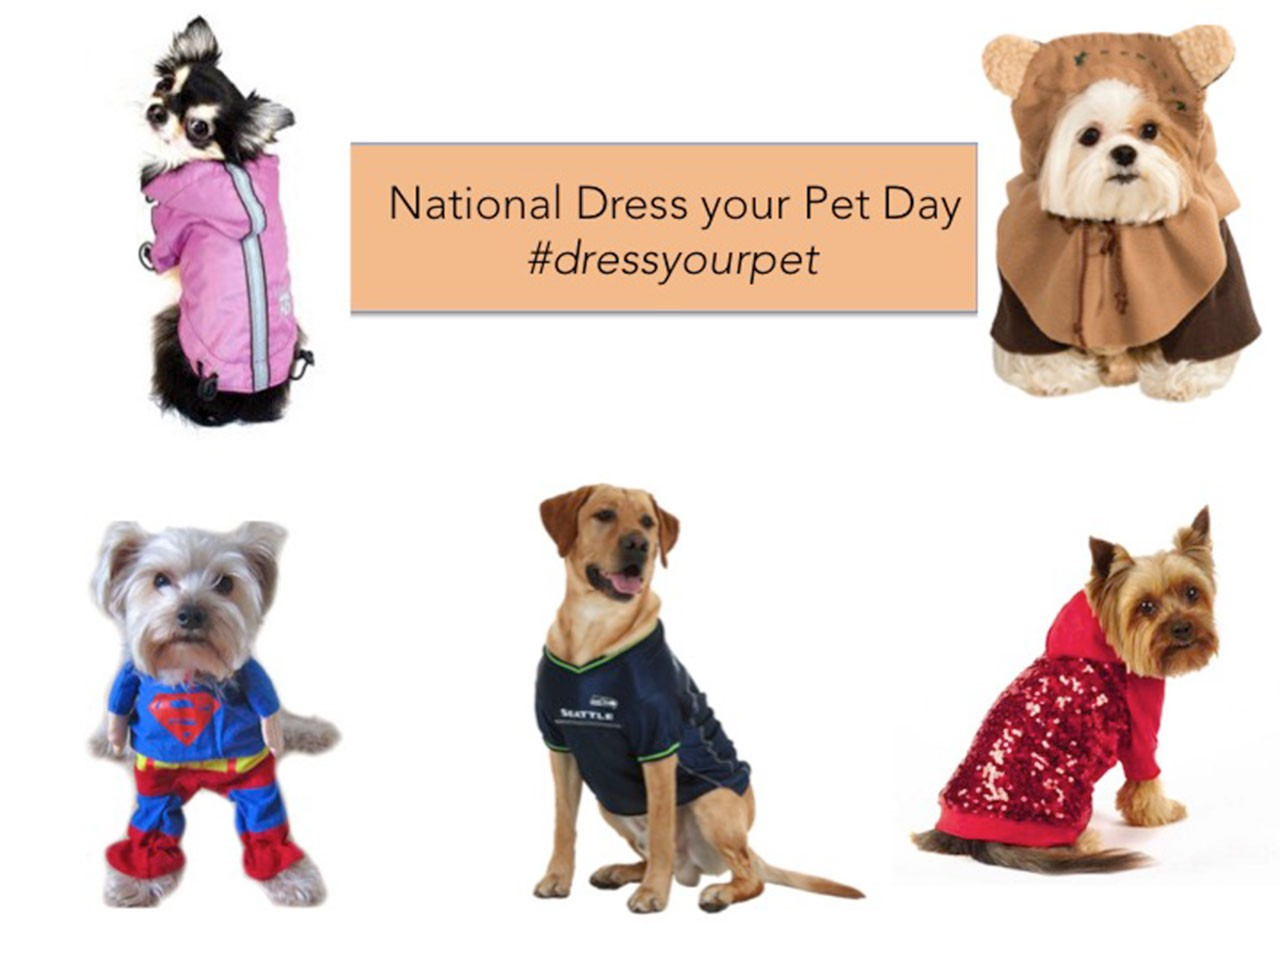 National Dress Your Pet Day